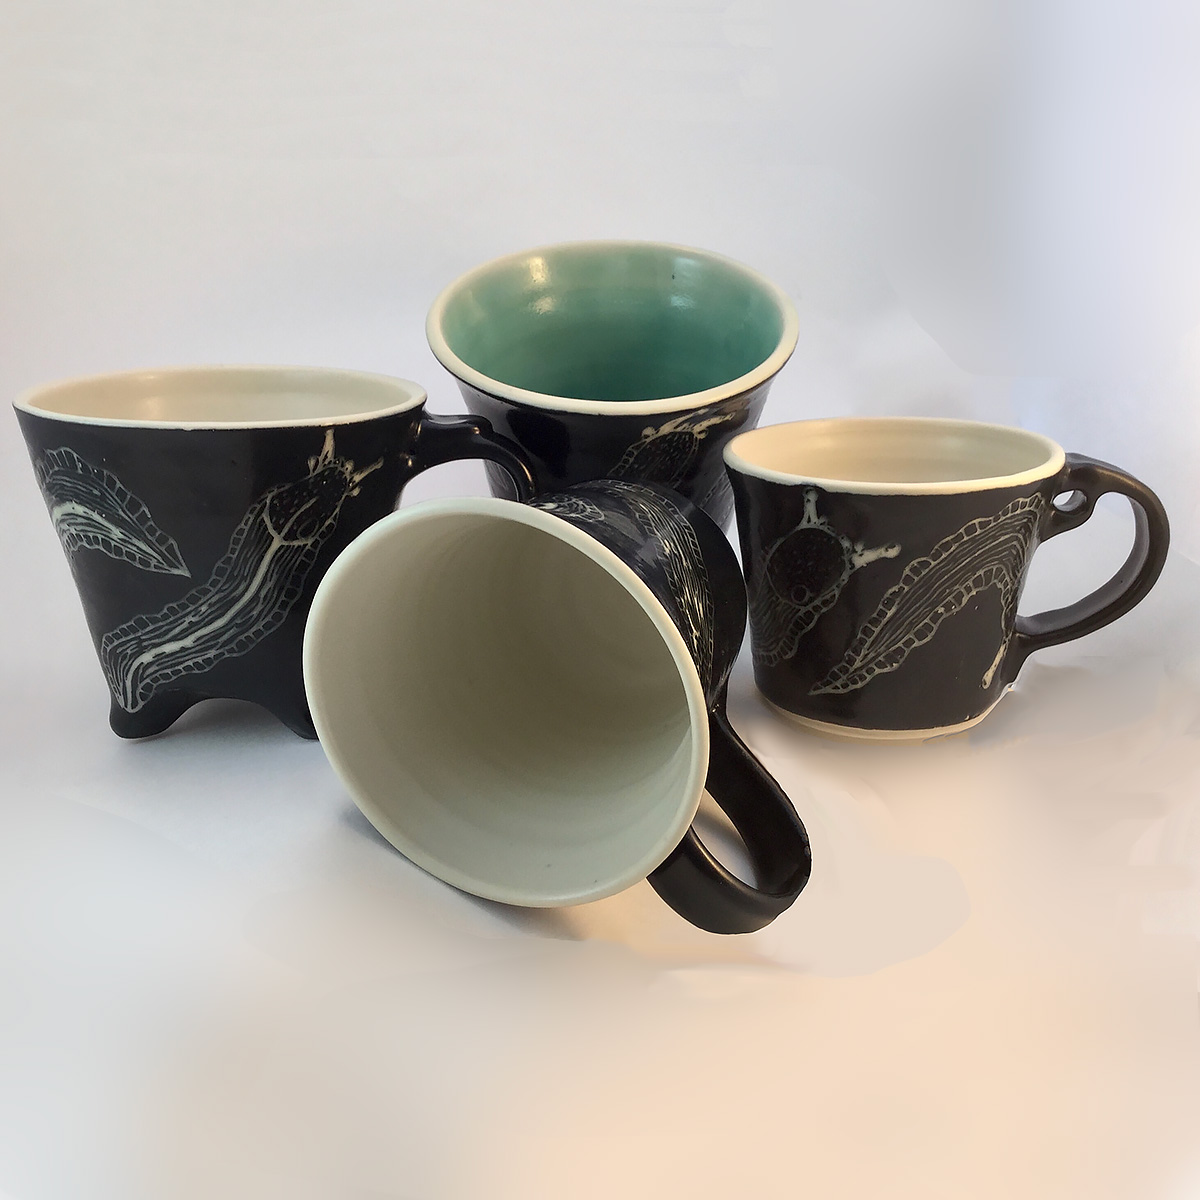 Four Slug Mugs